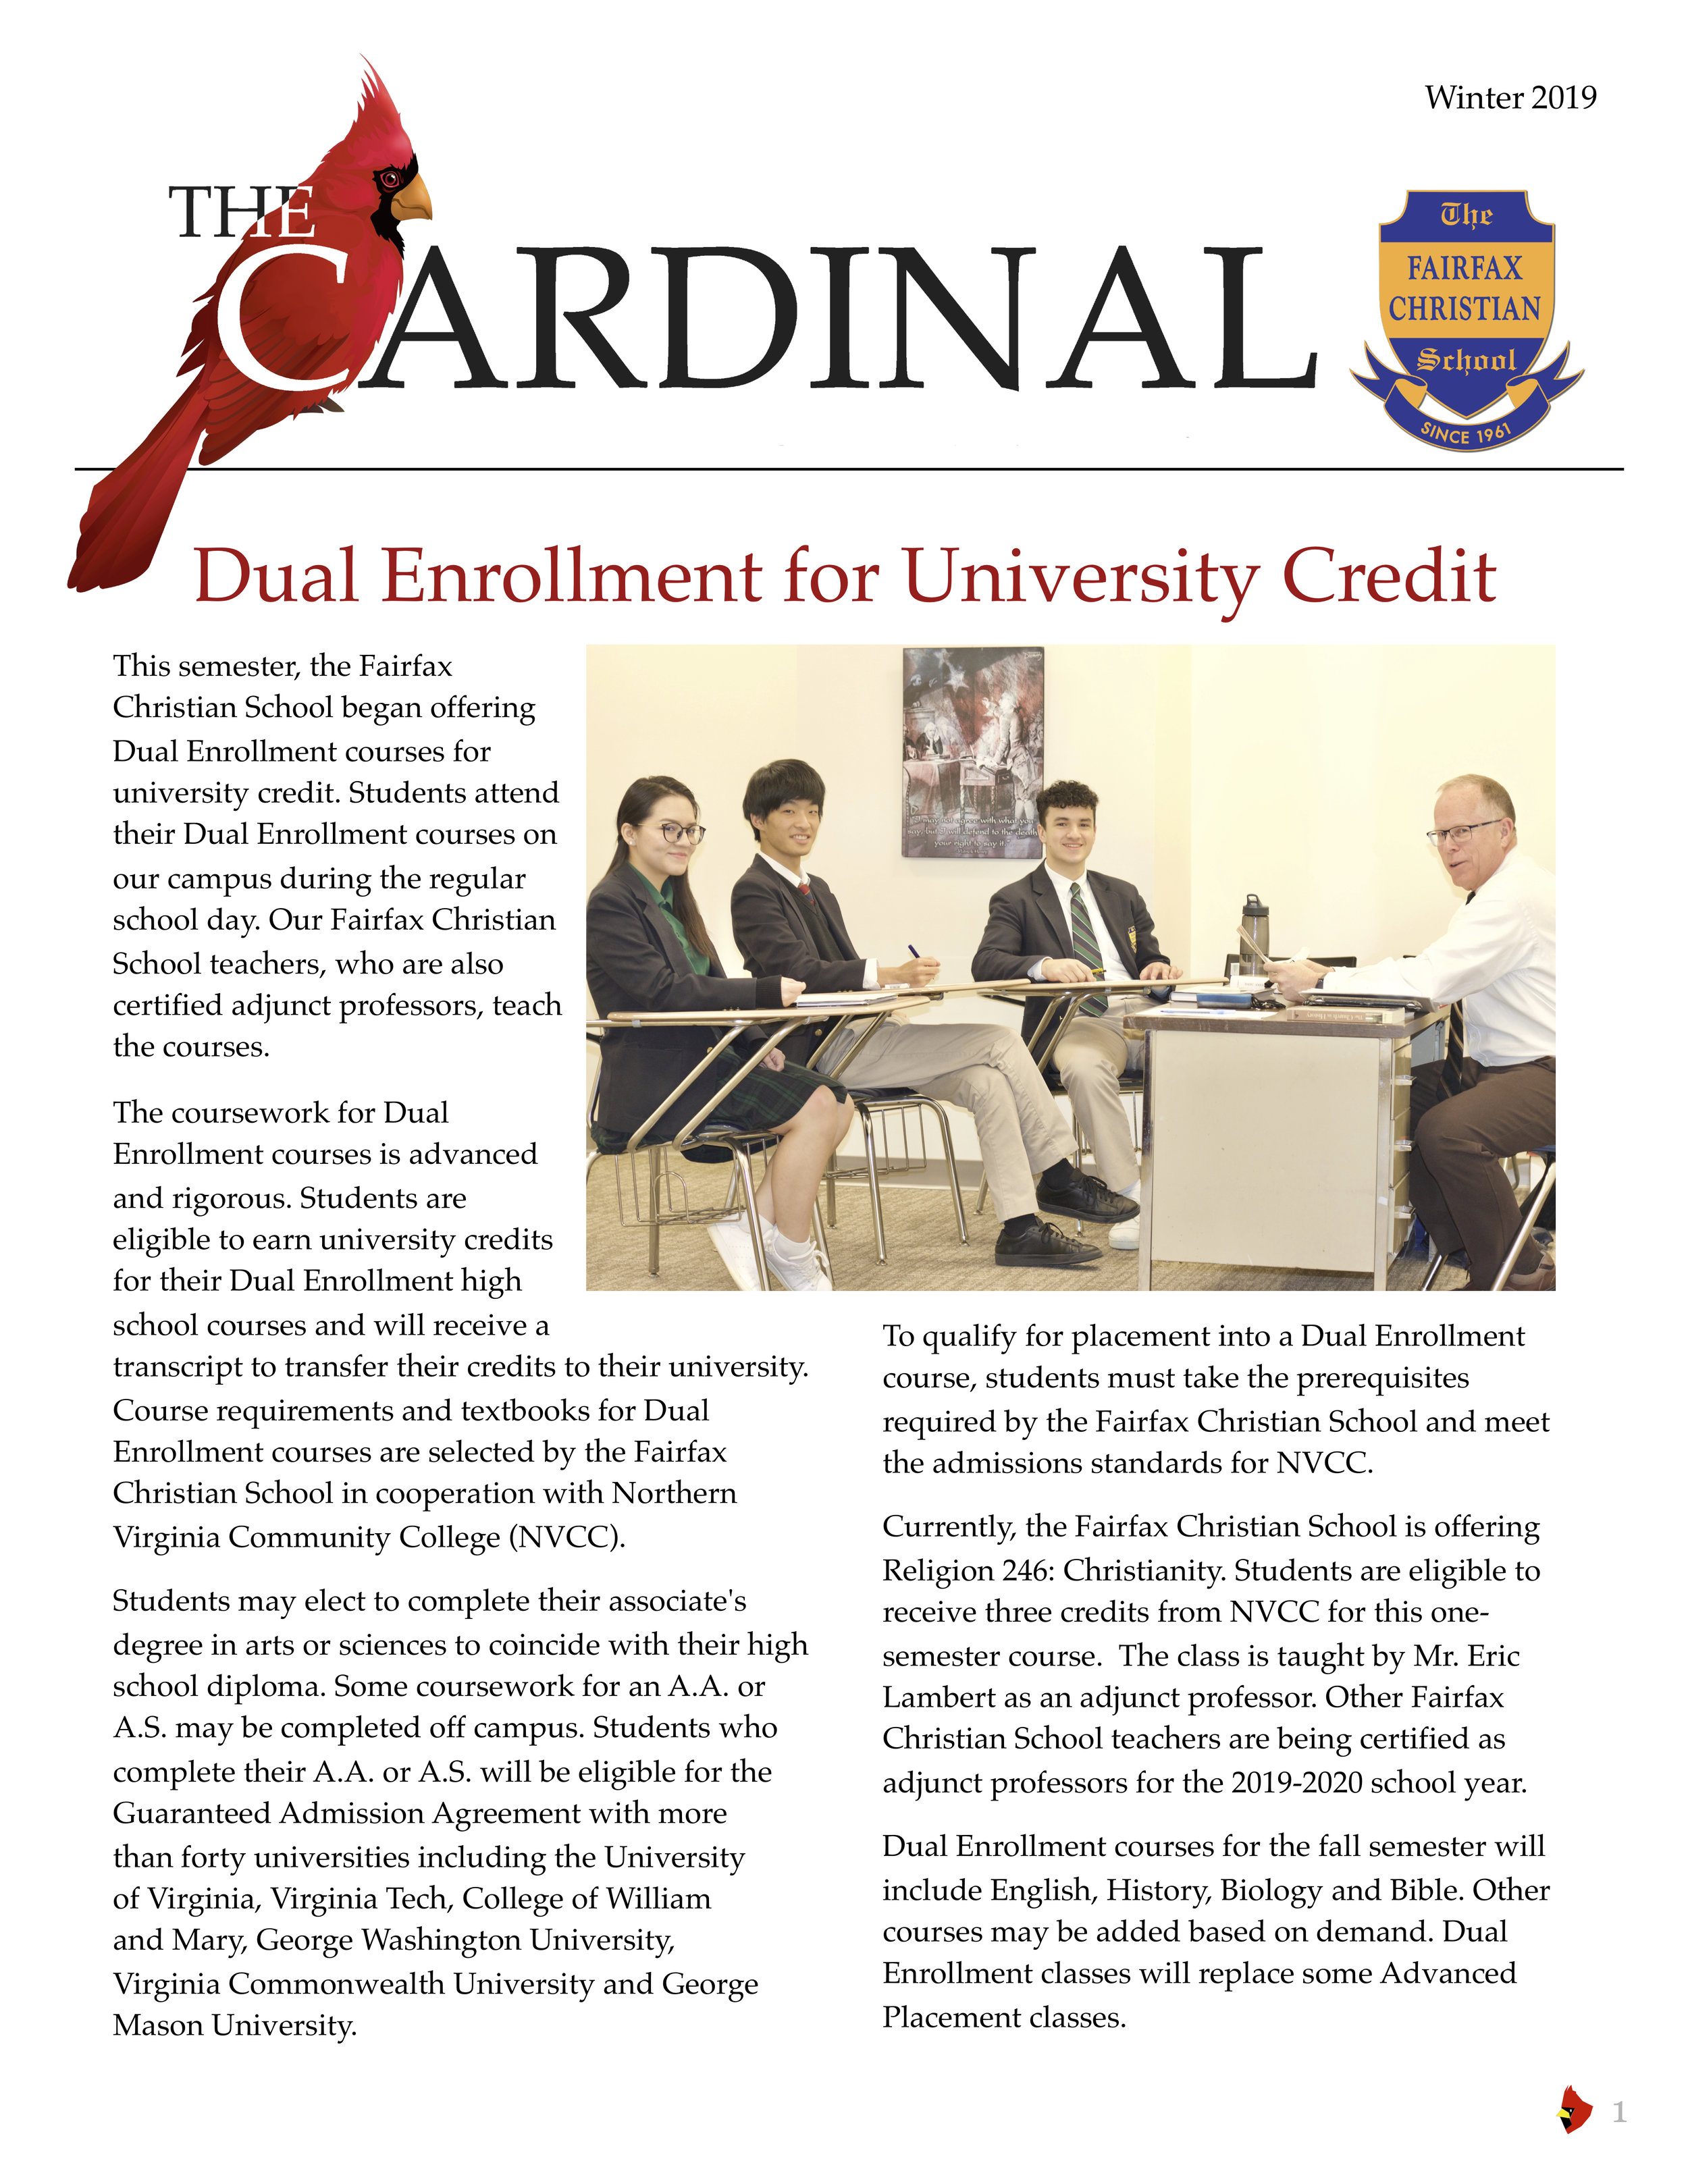 The Cardinal Winter 2019